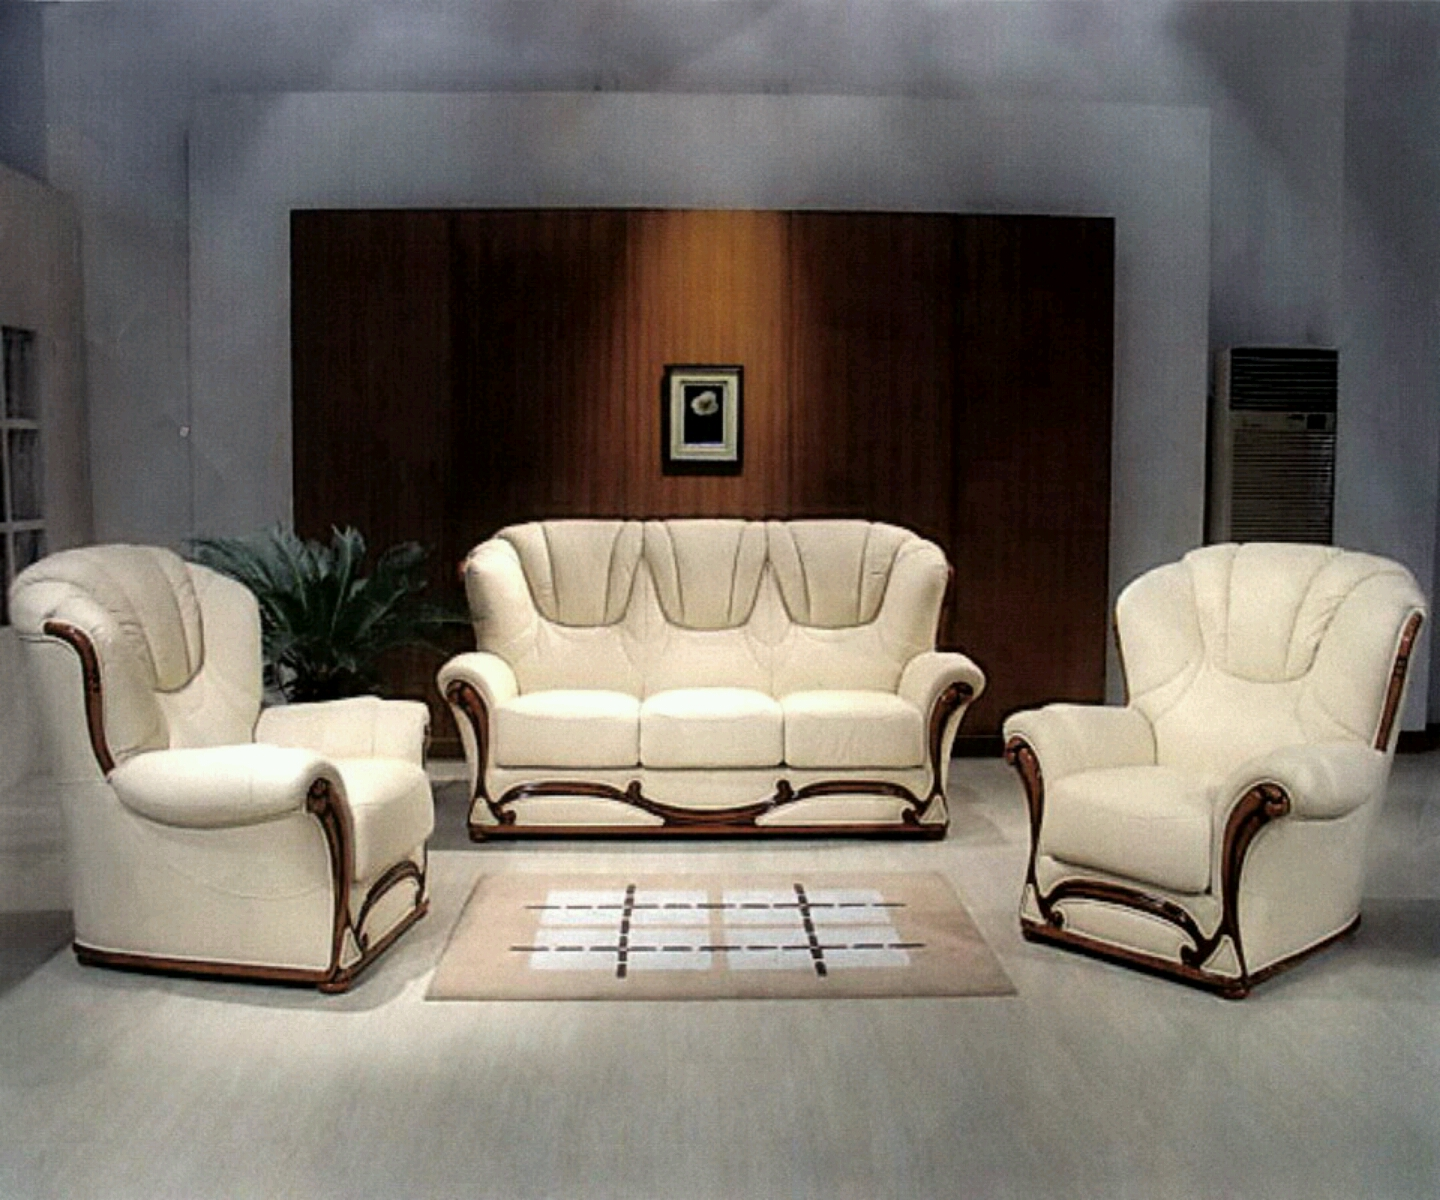 Sofa Modern Design Modern Sofa Set Designs Interior Decorating